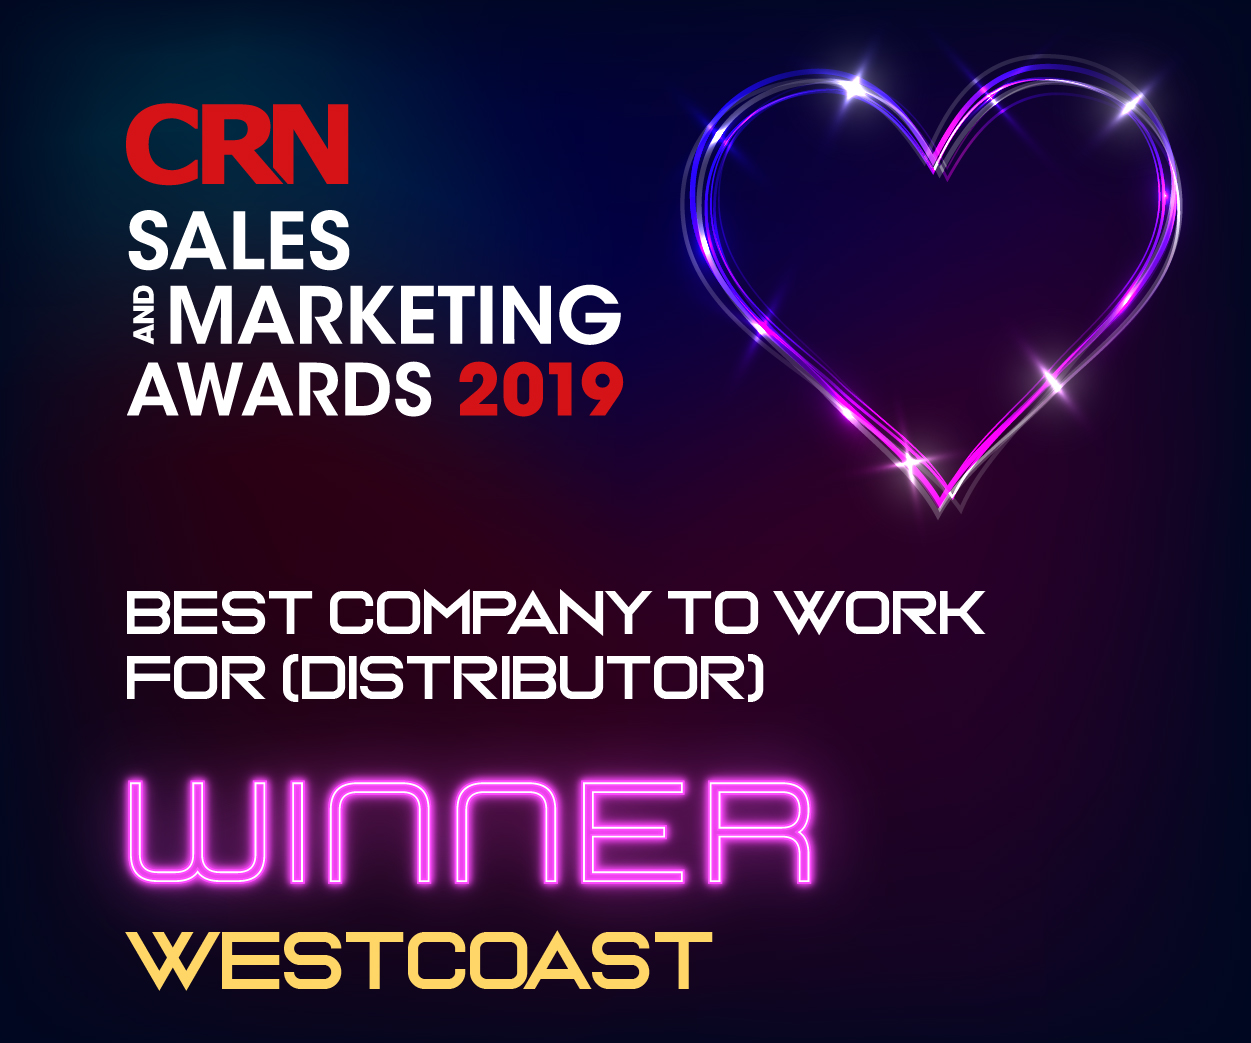 CRN Winners - Best Company to Work For 2019